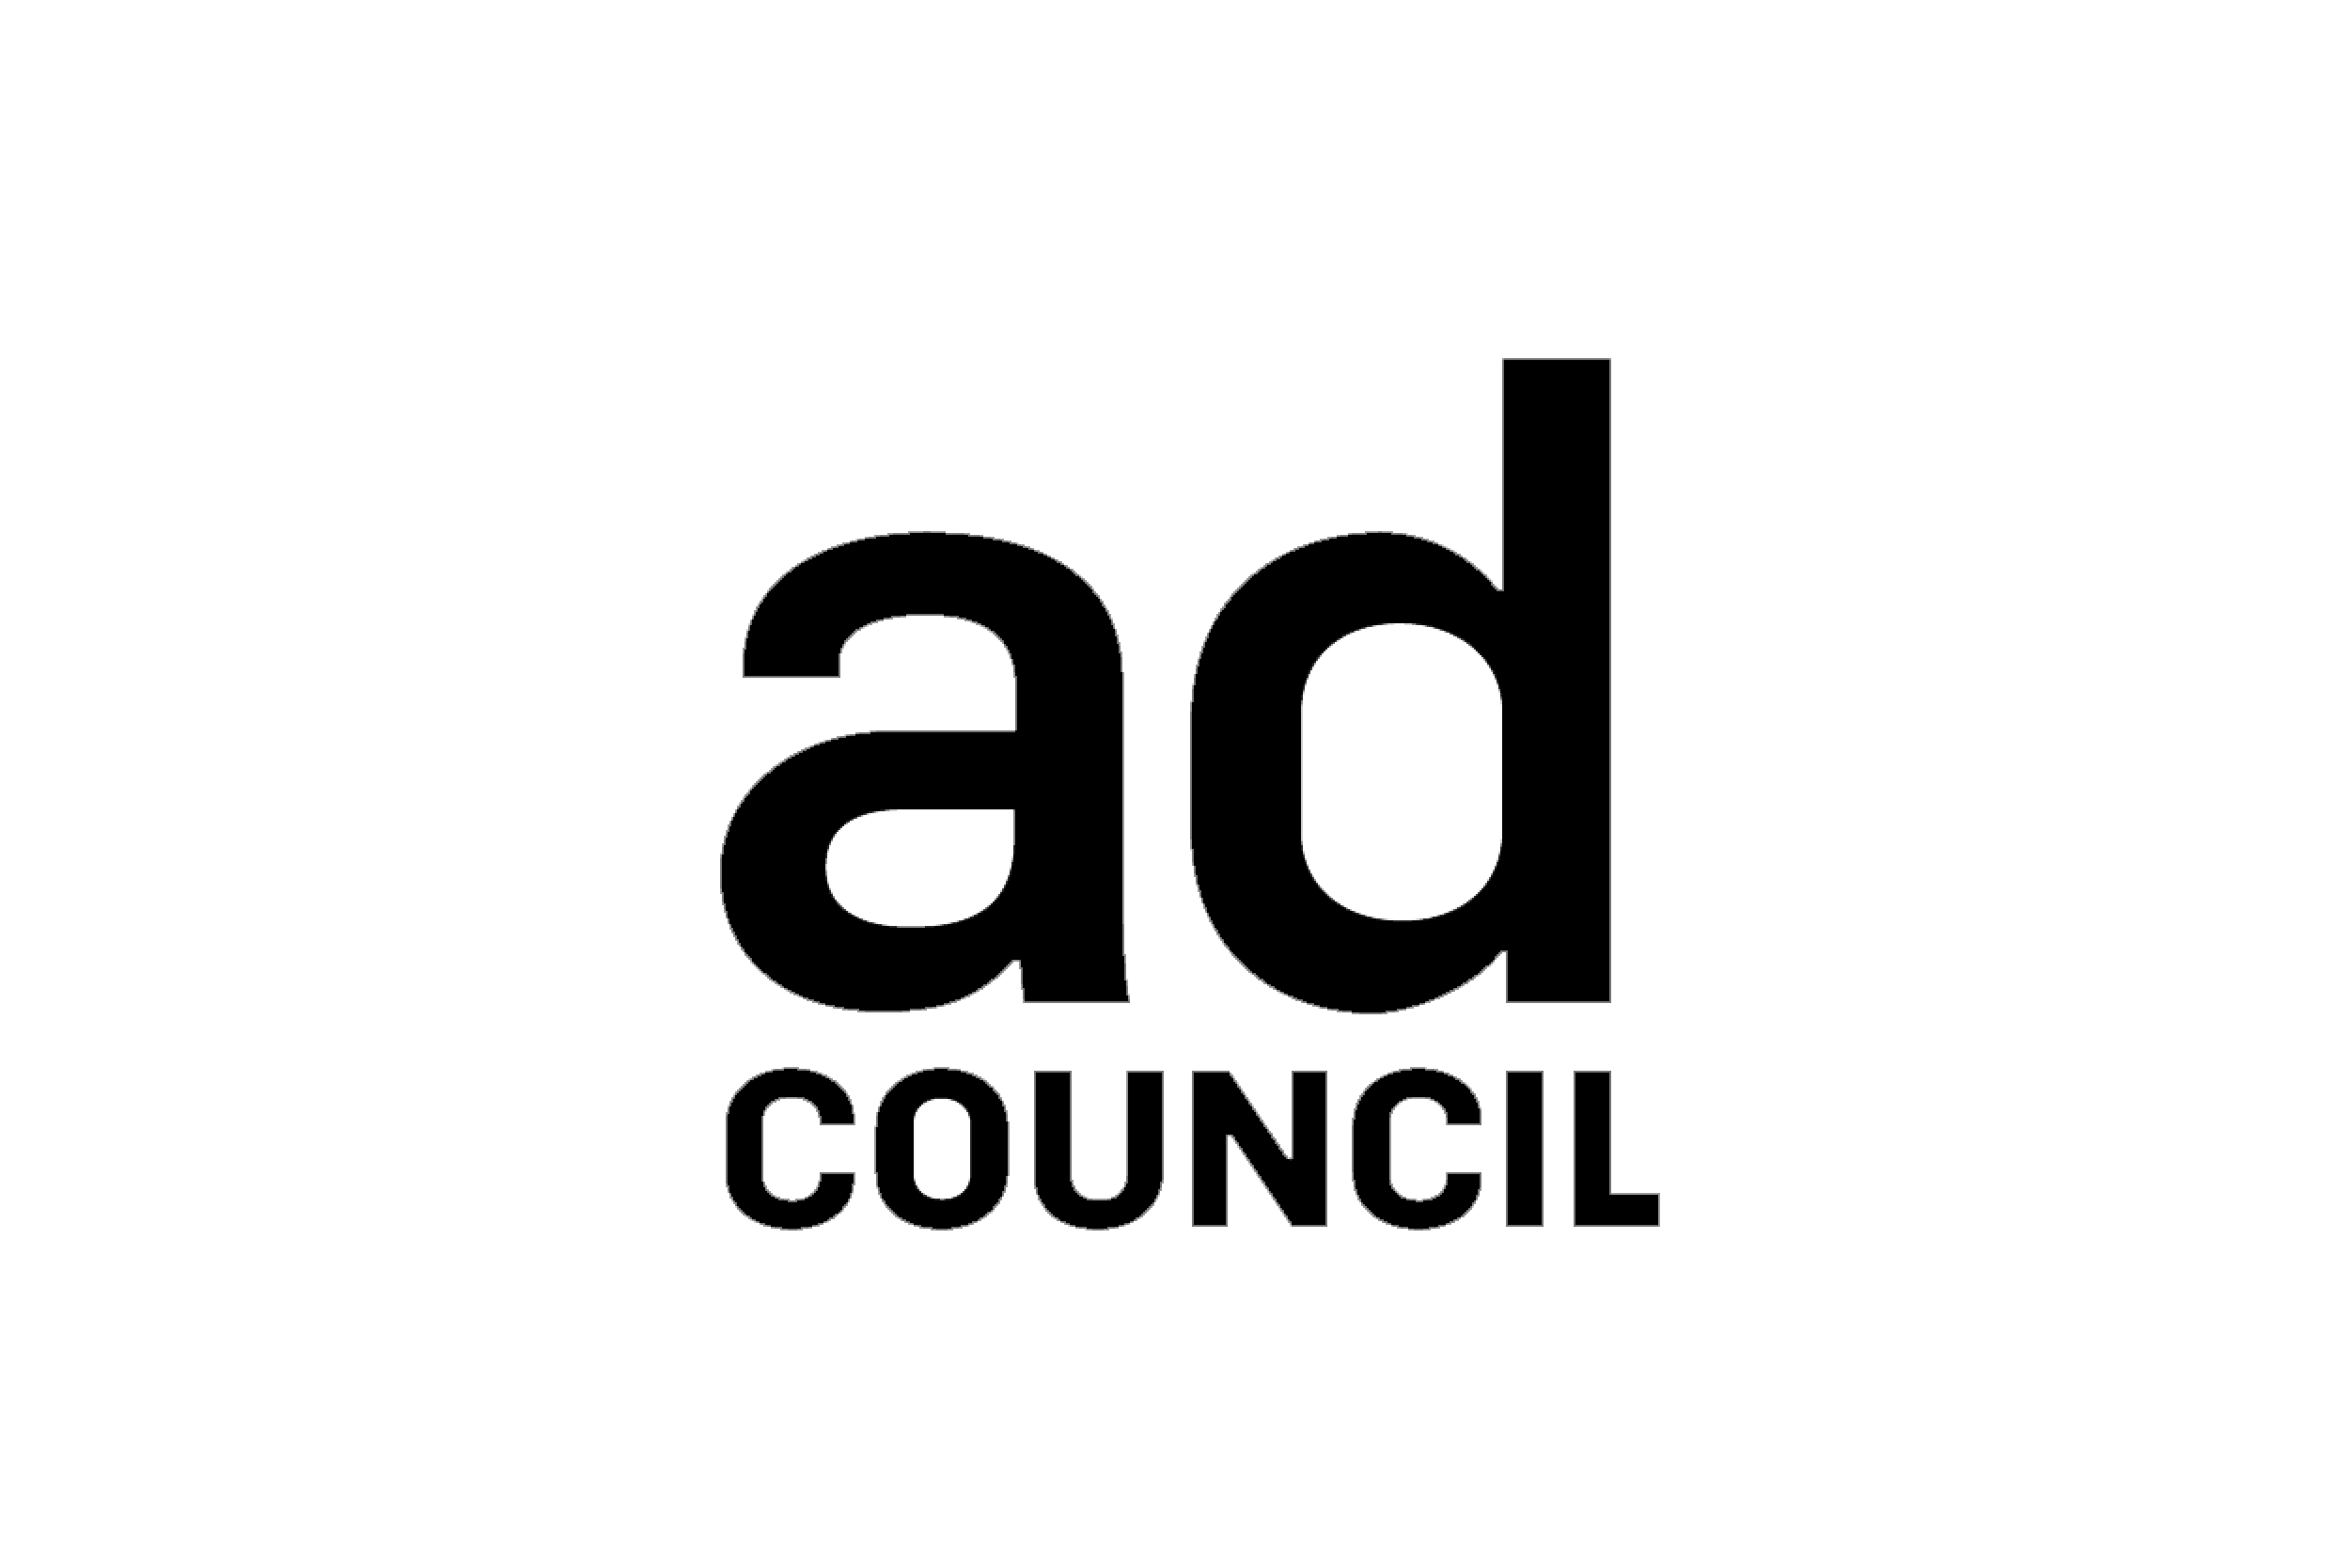 The Ad Council